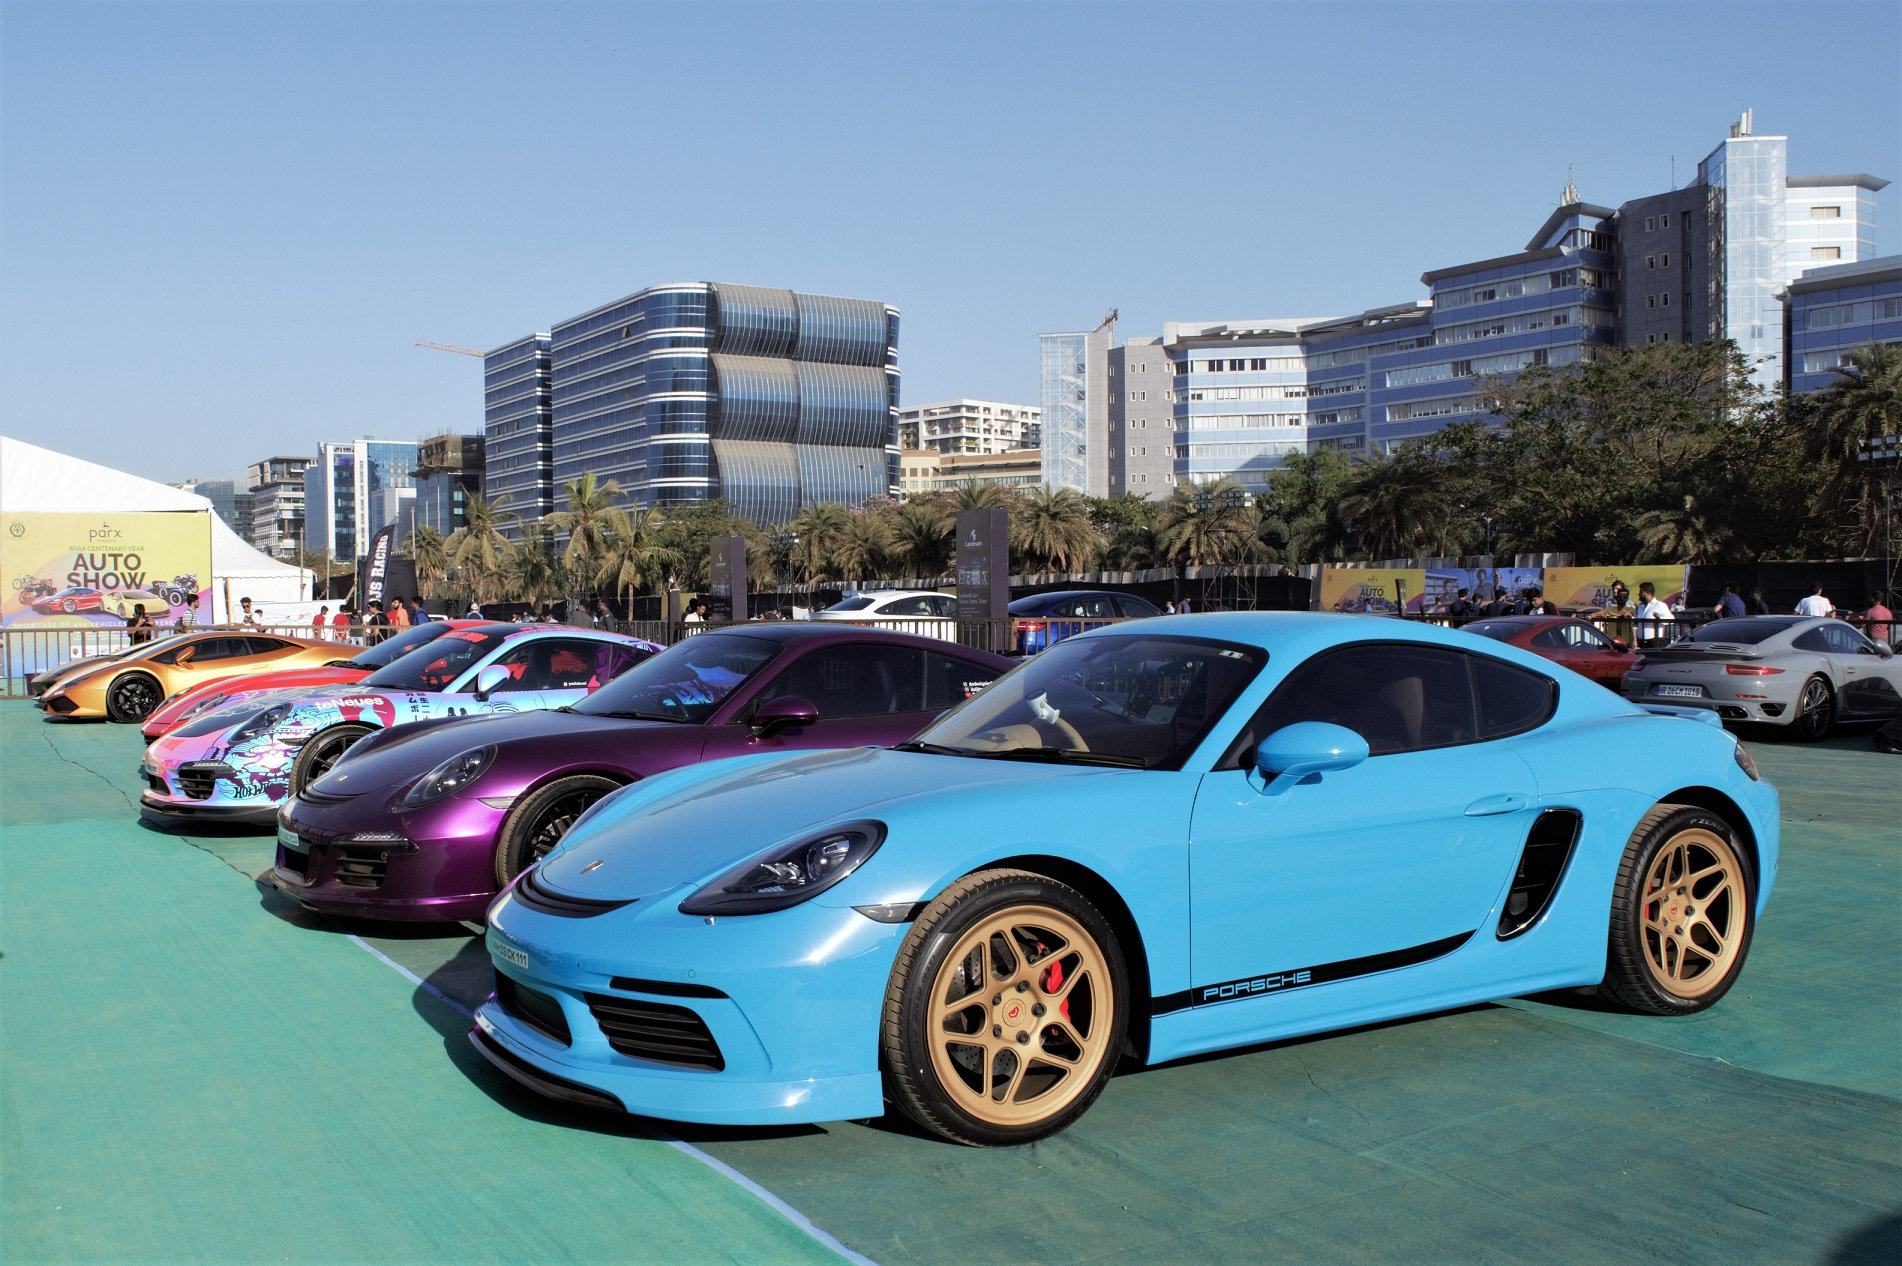 Super cars displayed at Parx Auto Show 2019